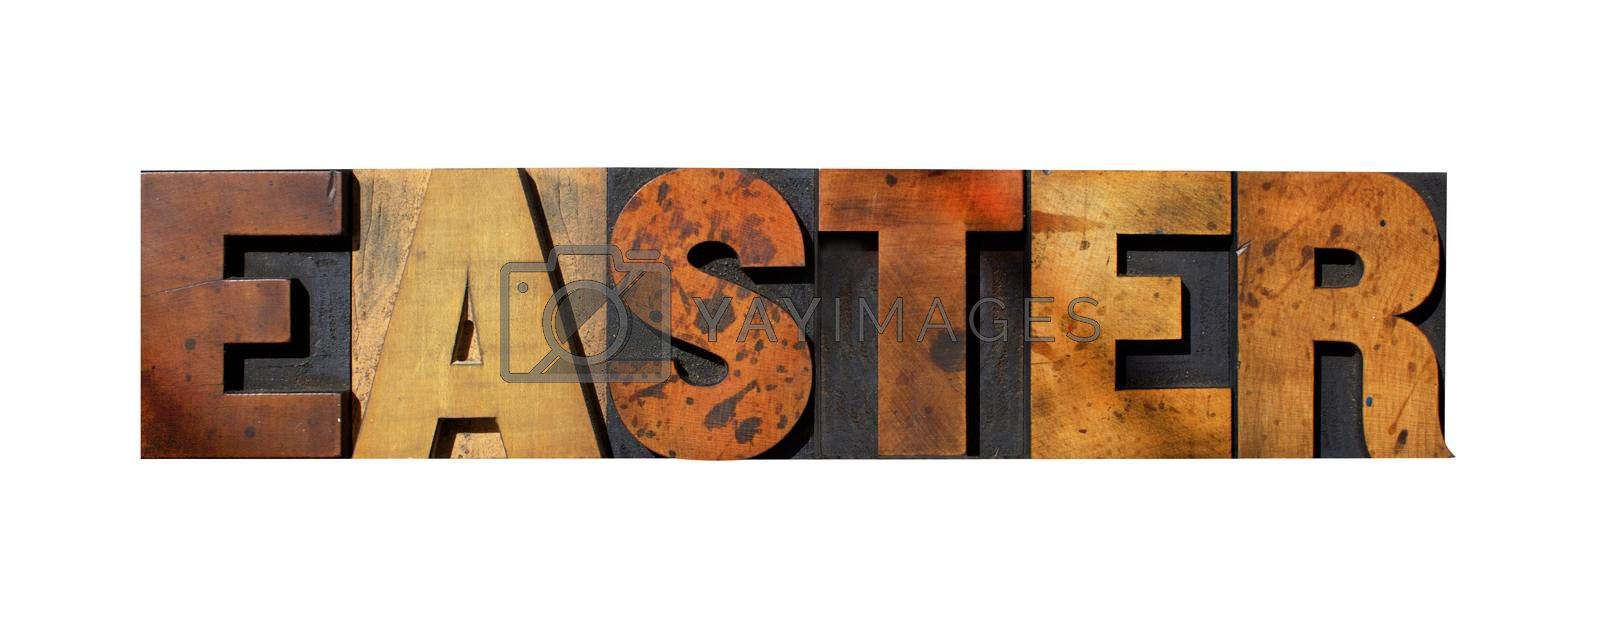 The word EASTER isolated on white and written in vintage letterpress type